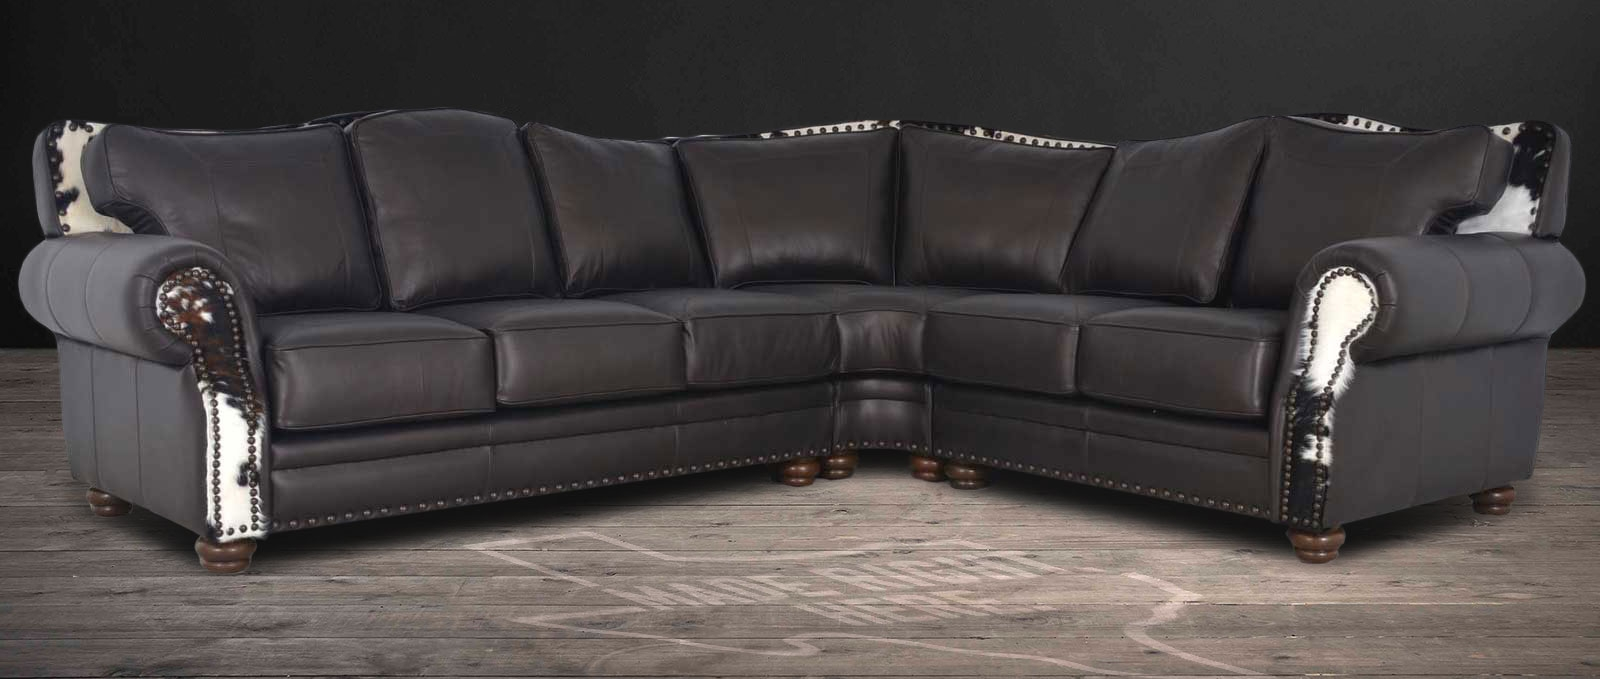 Texas Home Furniture ‹‹ Leather Furniture ‹‹ The Leather ...